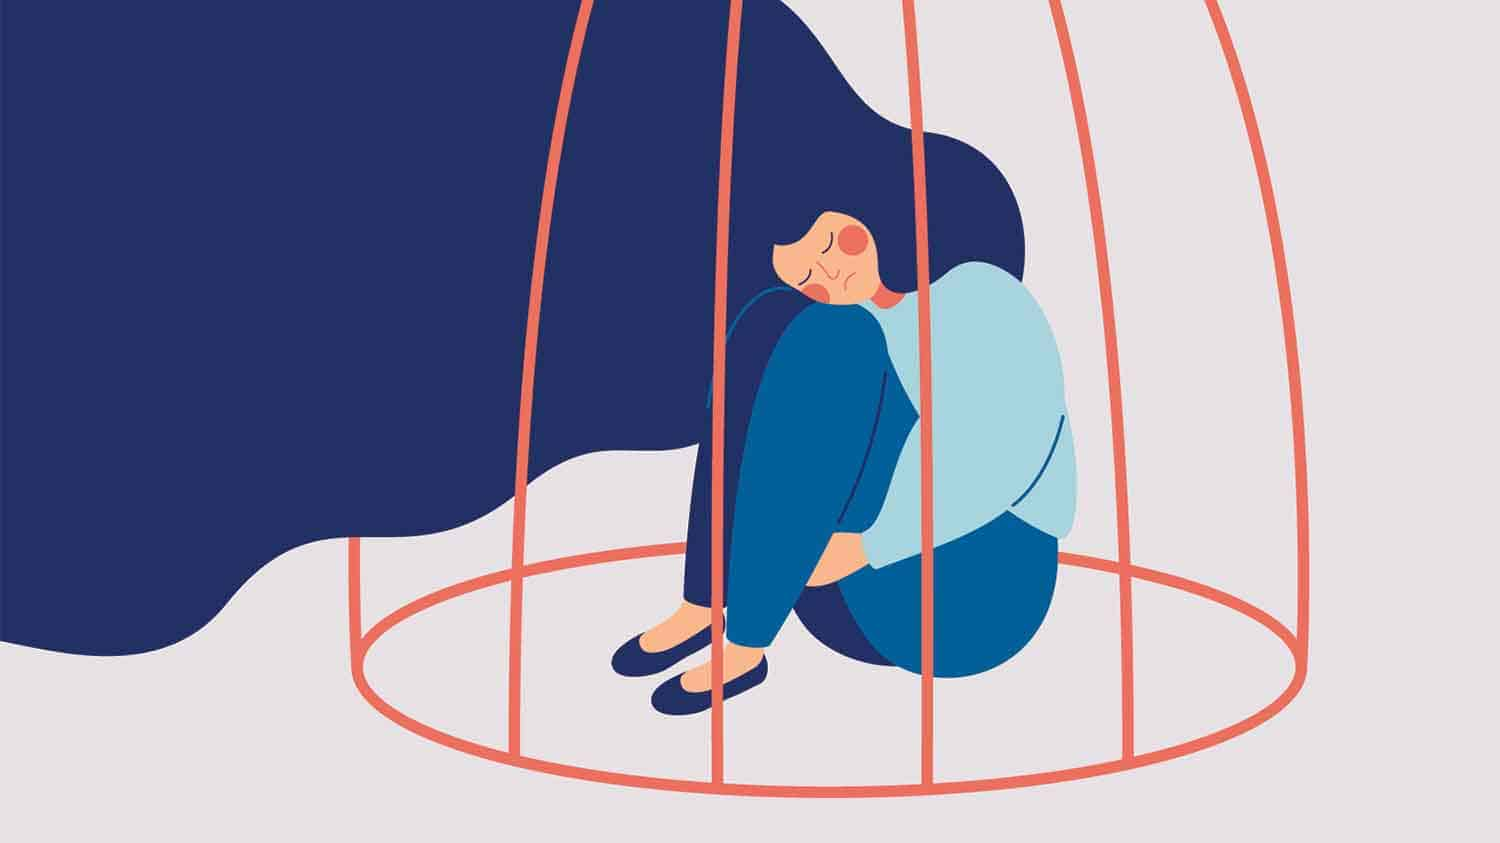 Graphic of a woman alone in a cage